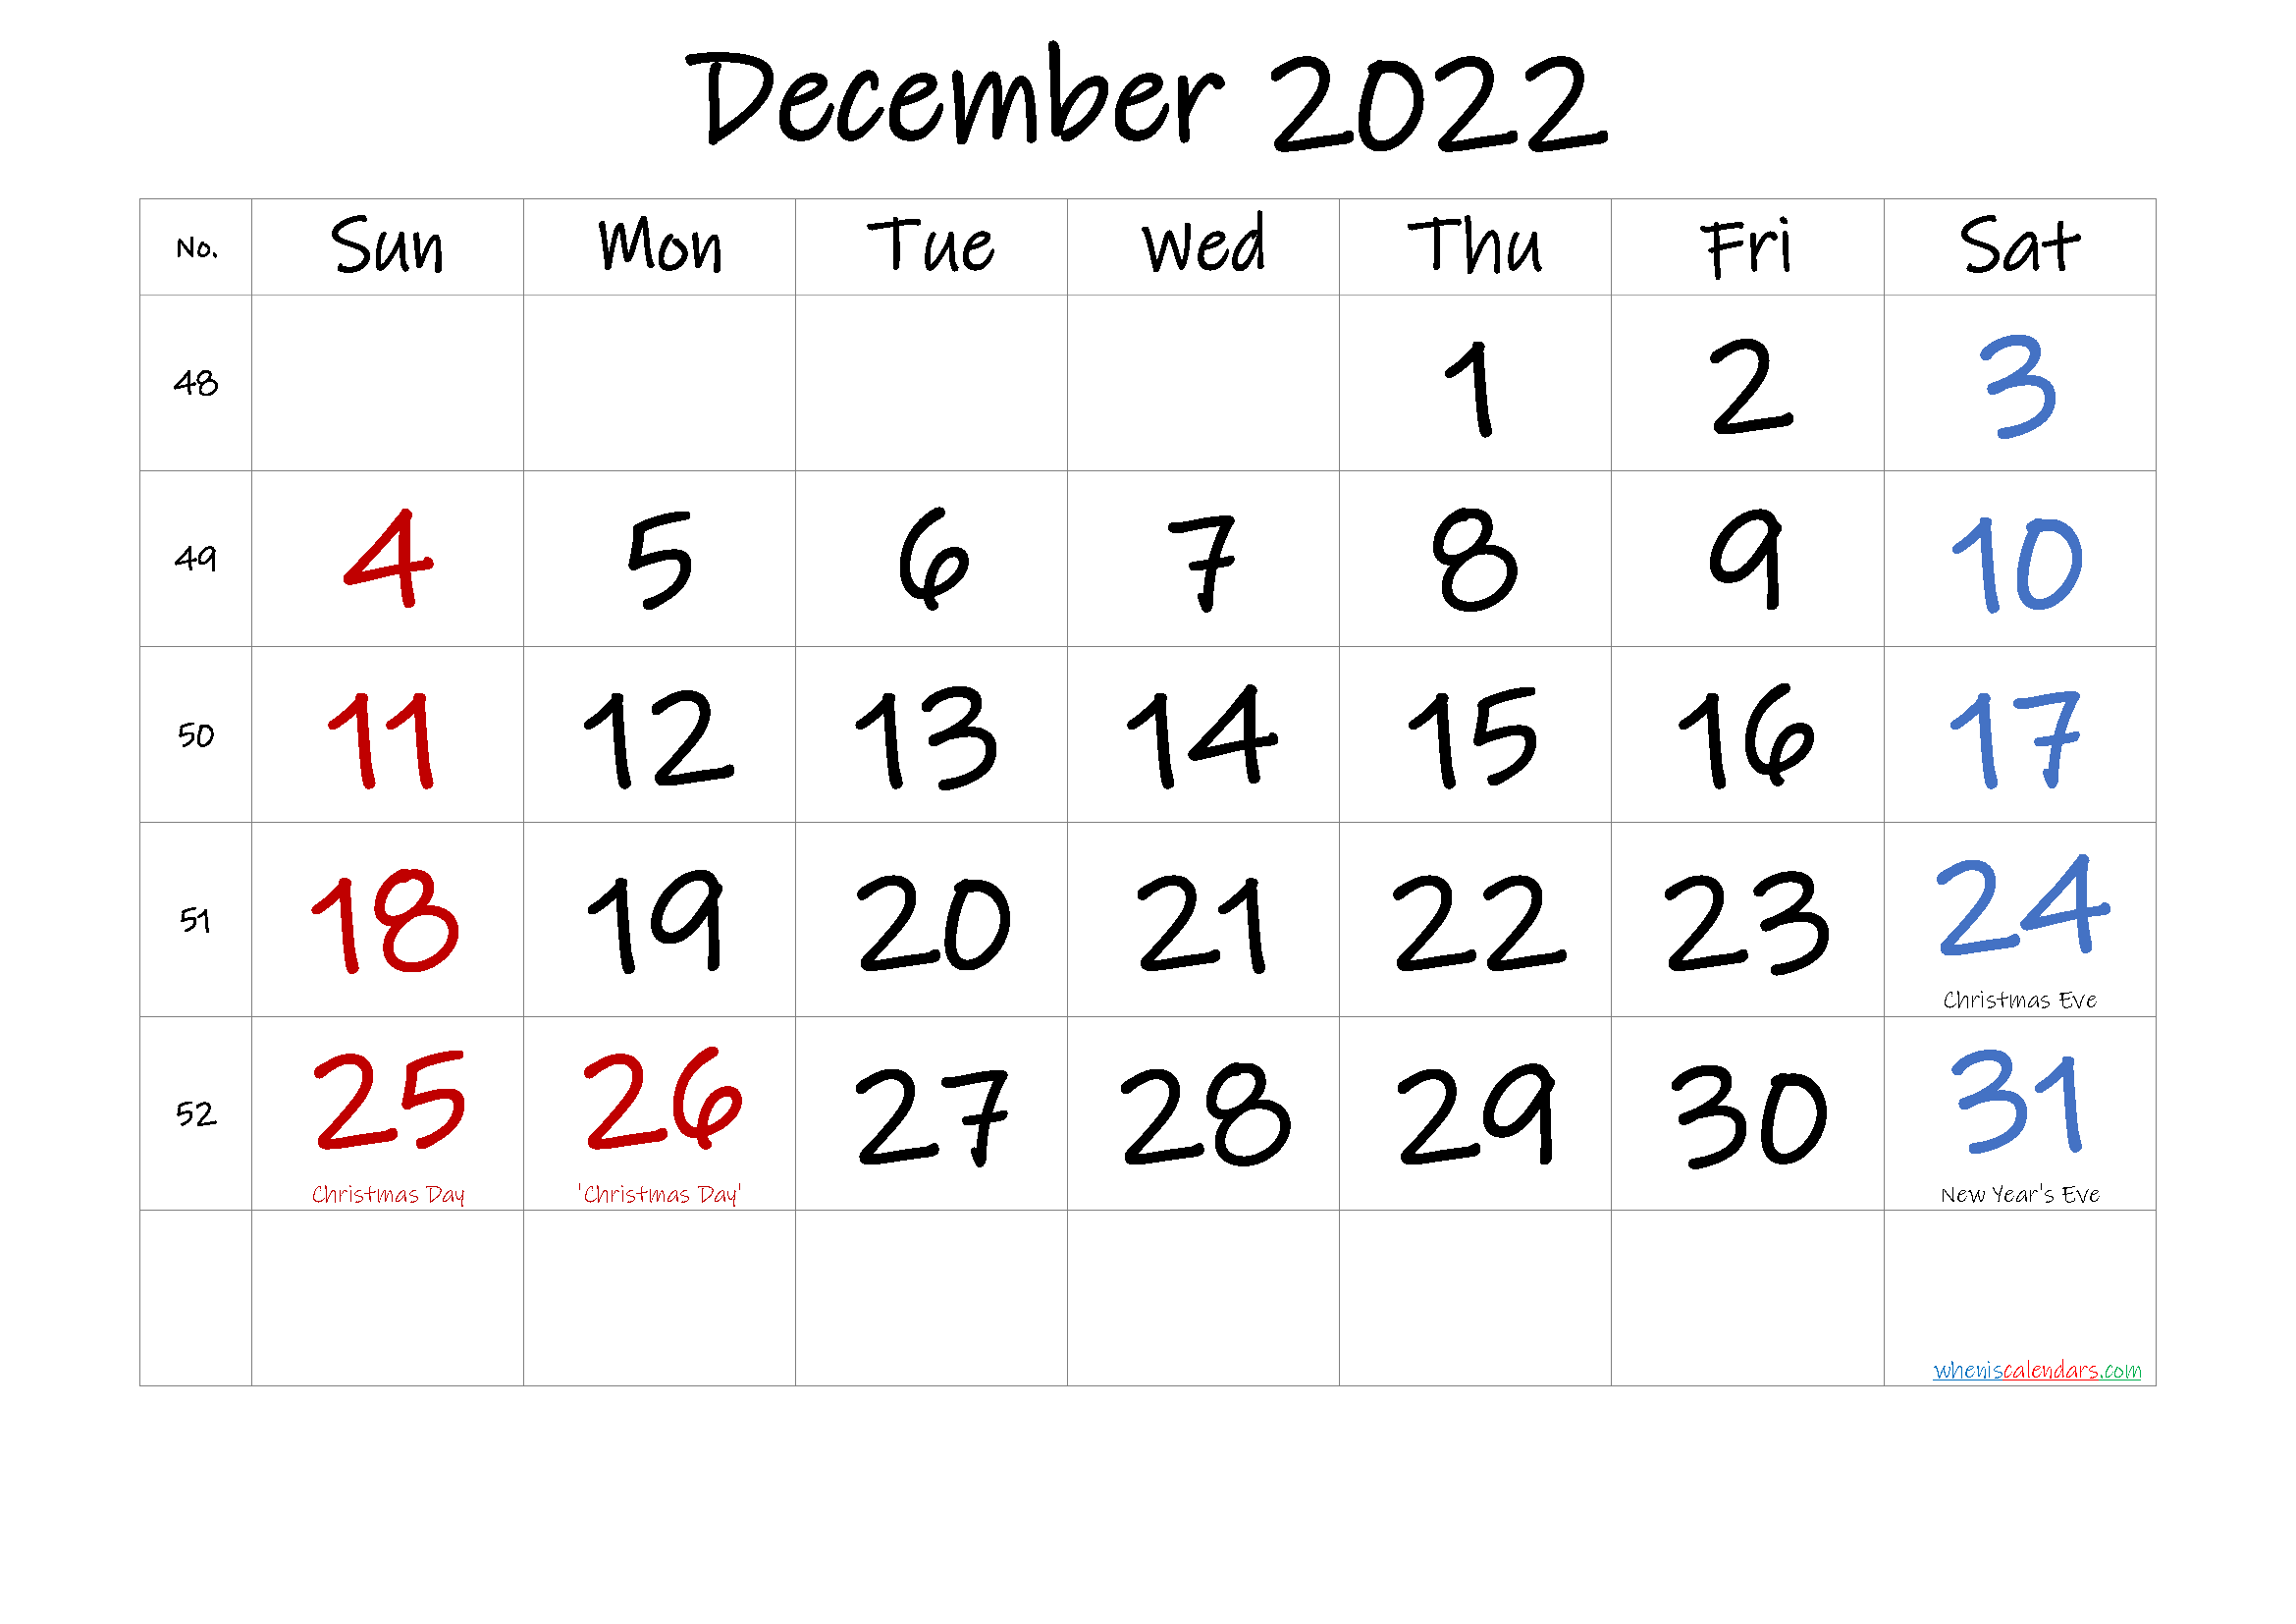 DECEMBER 2022 Printable Calendar with Holidays